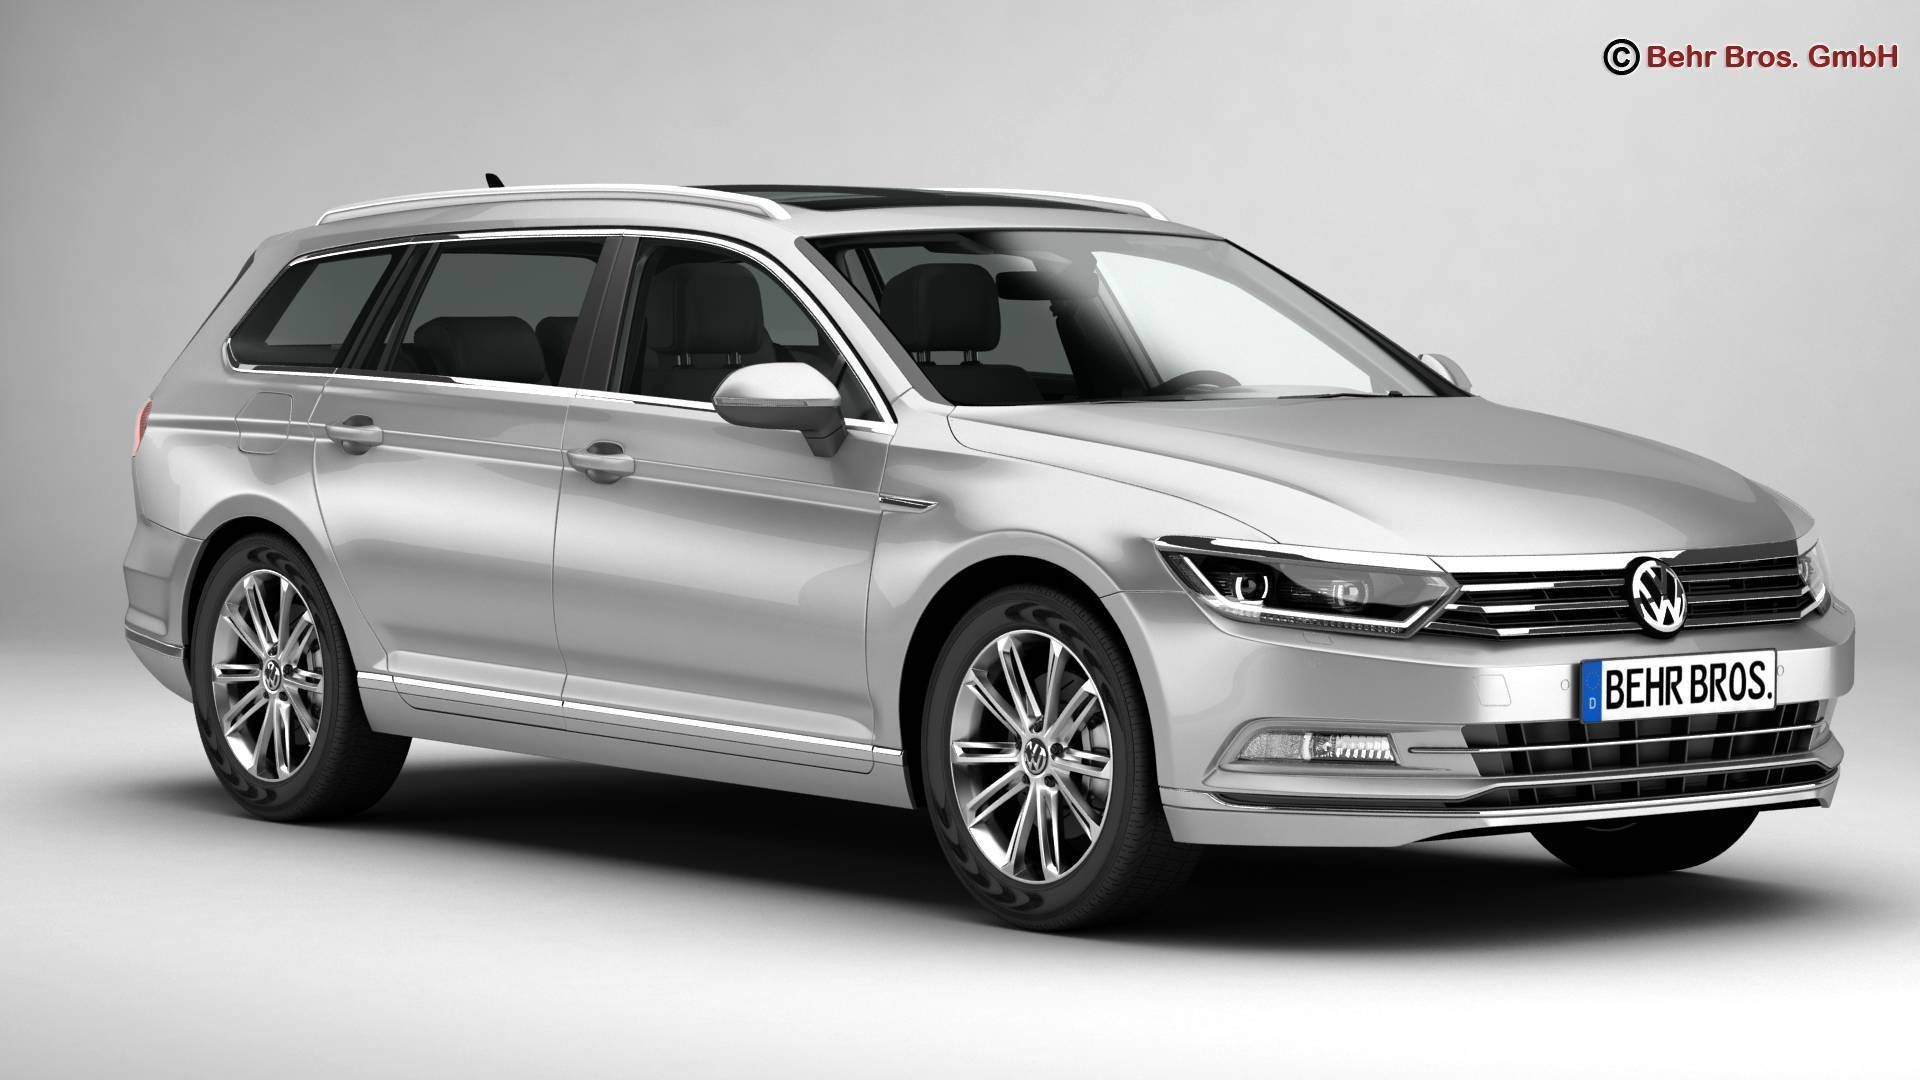 volkswagen passat variant 2015 3d model max obj 3ds fbx c4d lwo lw lws. Black Bedroom Furniture Sets. Home Design Ideas